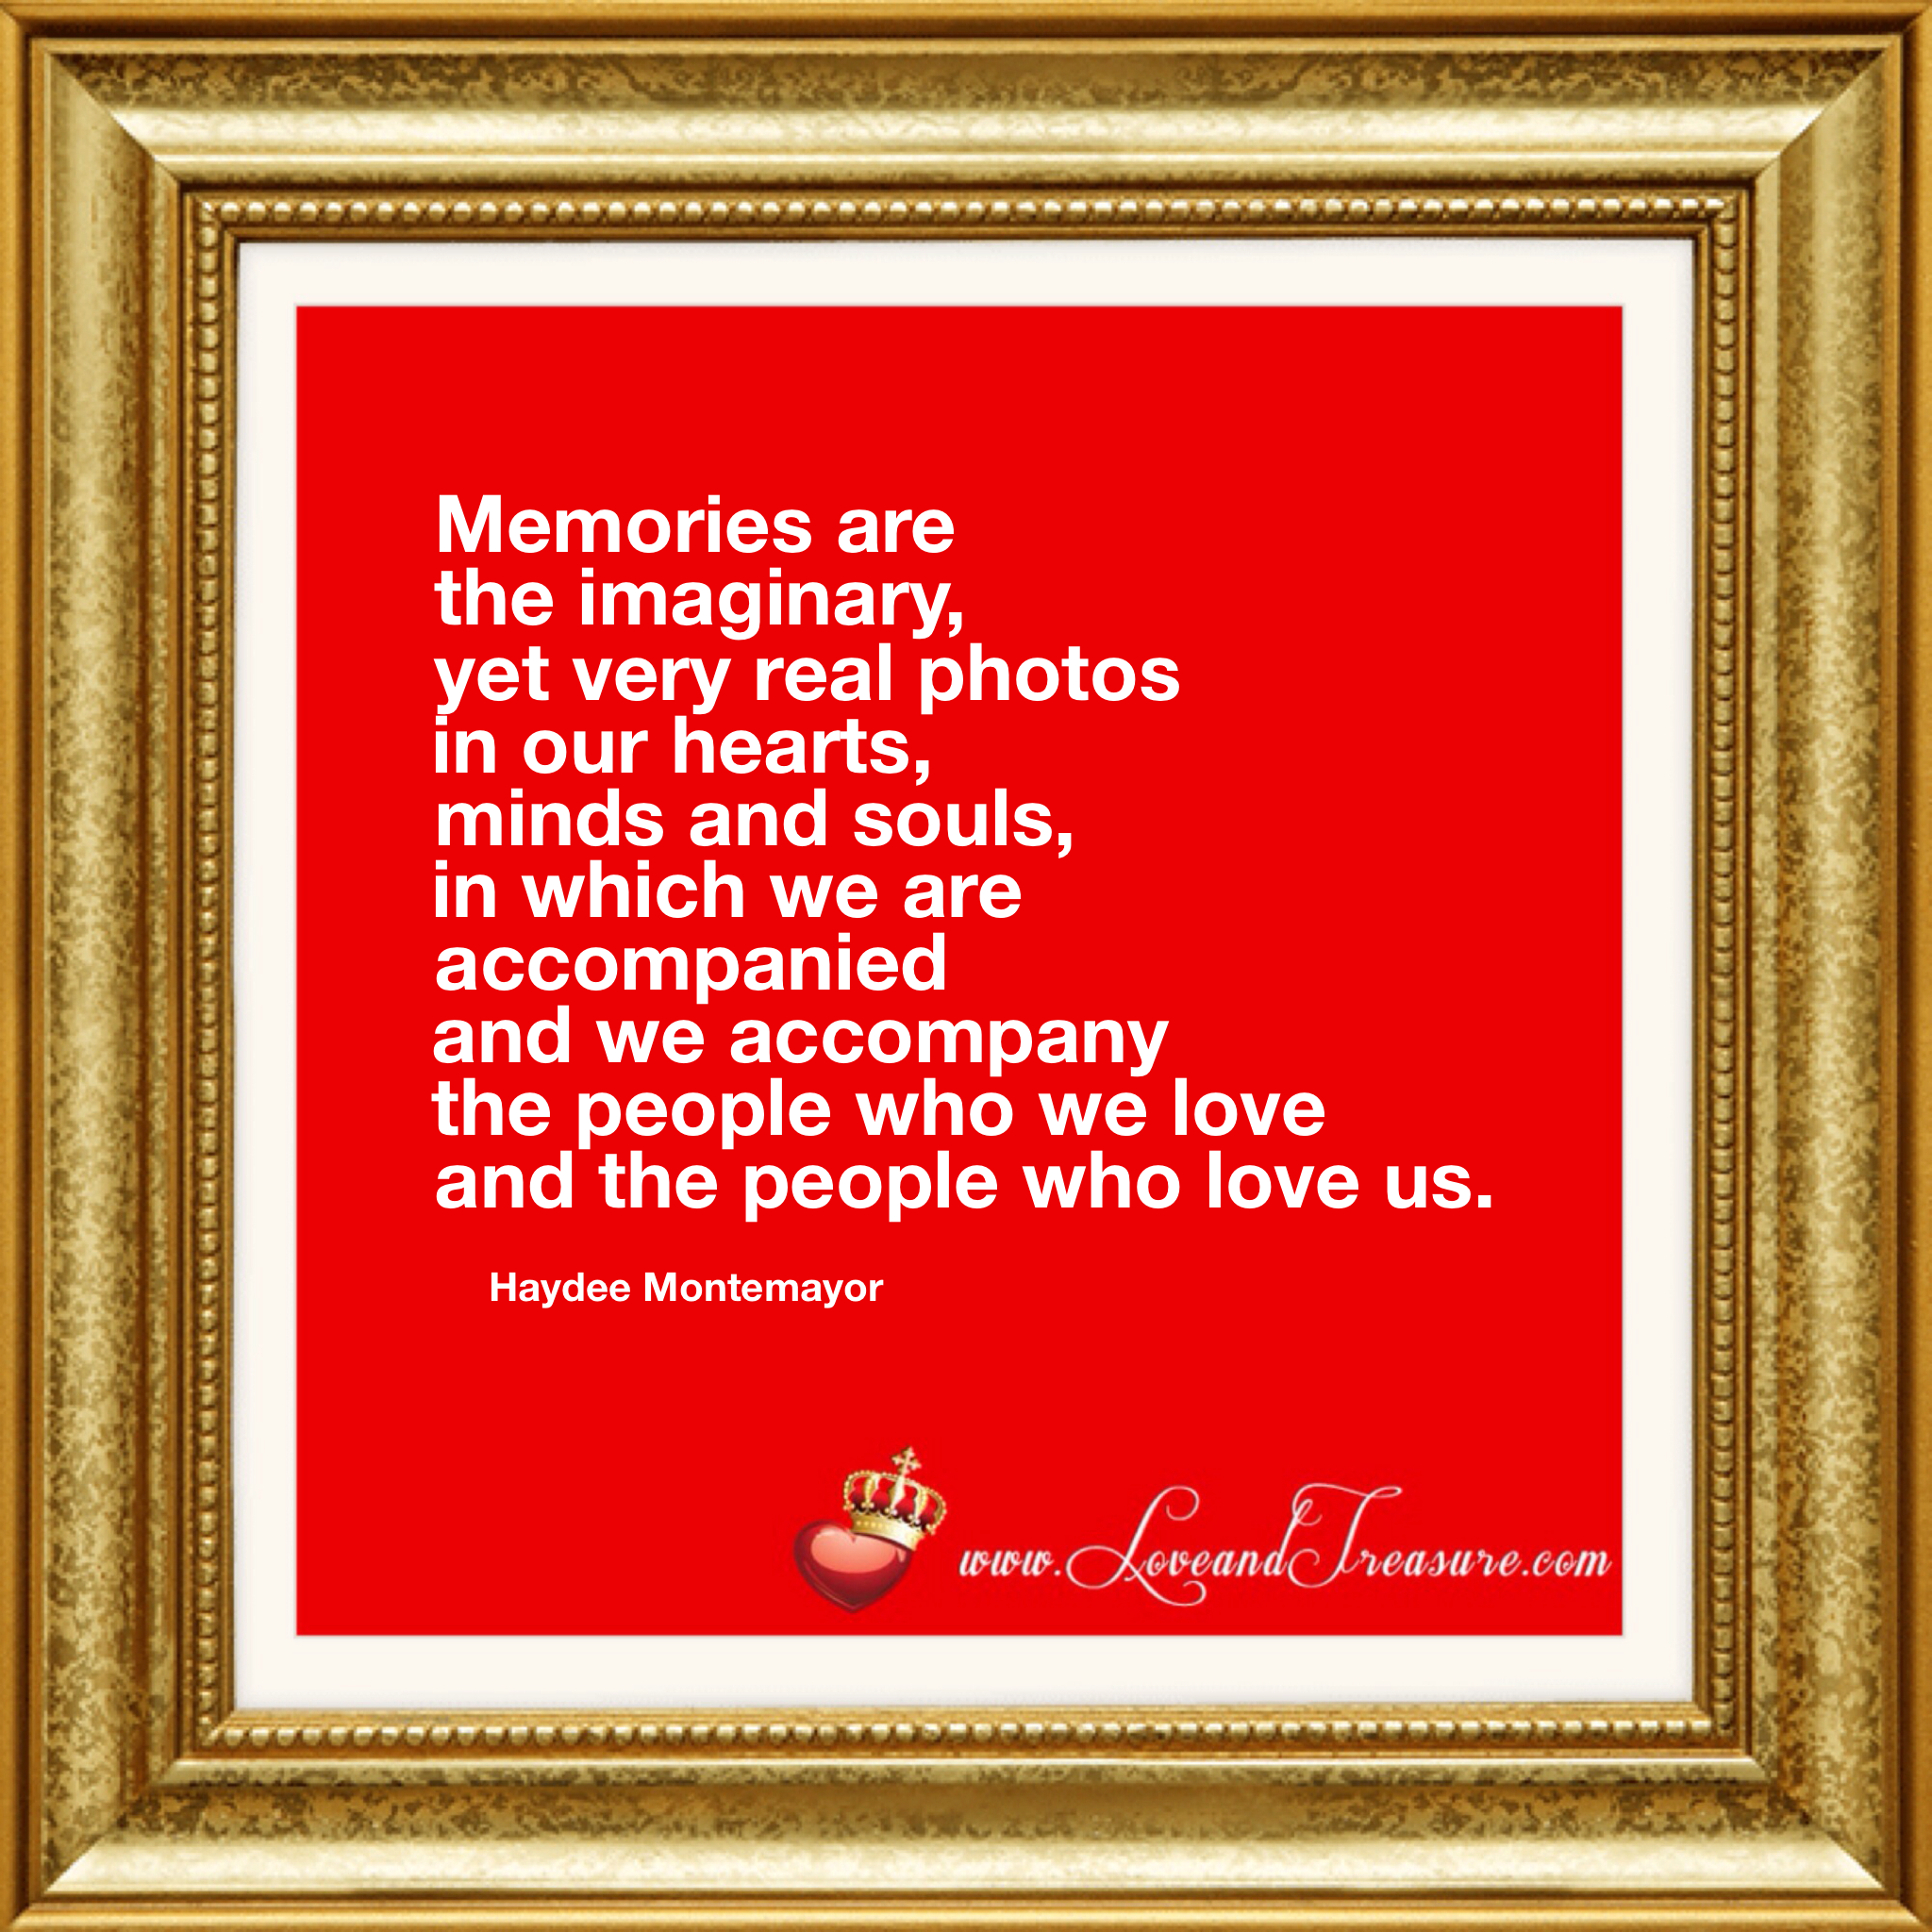 """Memories are the imaginary, yet very real photos in our hearts, minds and souls in which we are accompanied and we accompany the people who we love and the people who love us."" - Haydee Montemayor from Love and Treasure www.loveandtreasure.com"